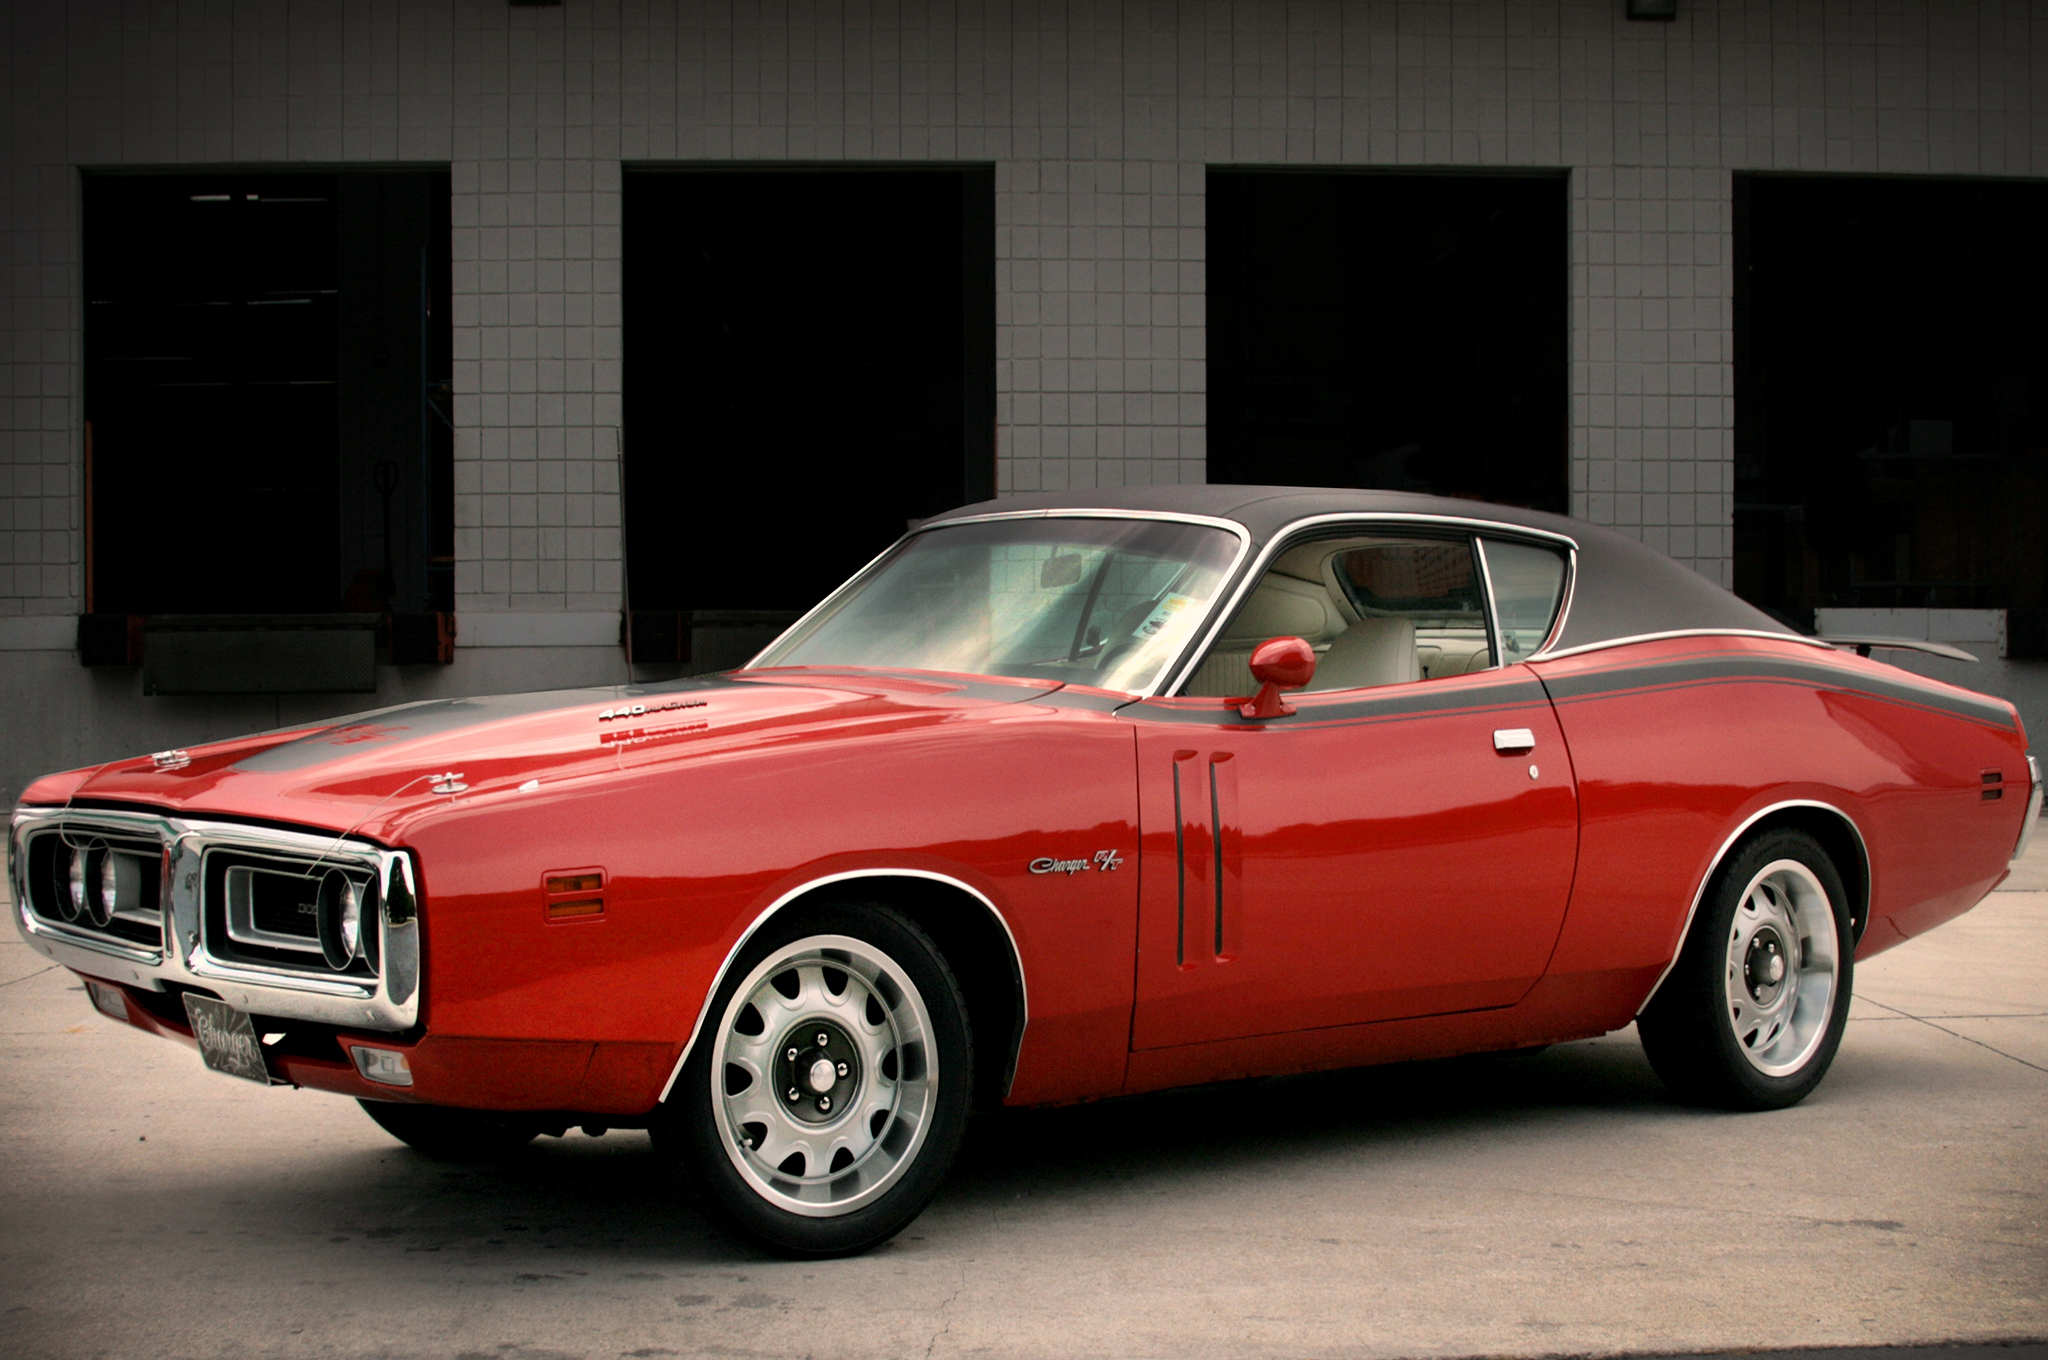 YearOne's cast-aluminum 17-inch Rallye wheels vastly improve this '71  Charger's traction